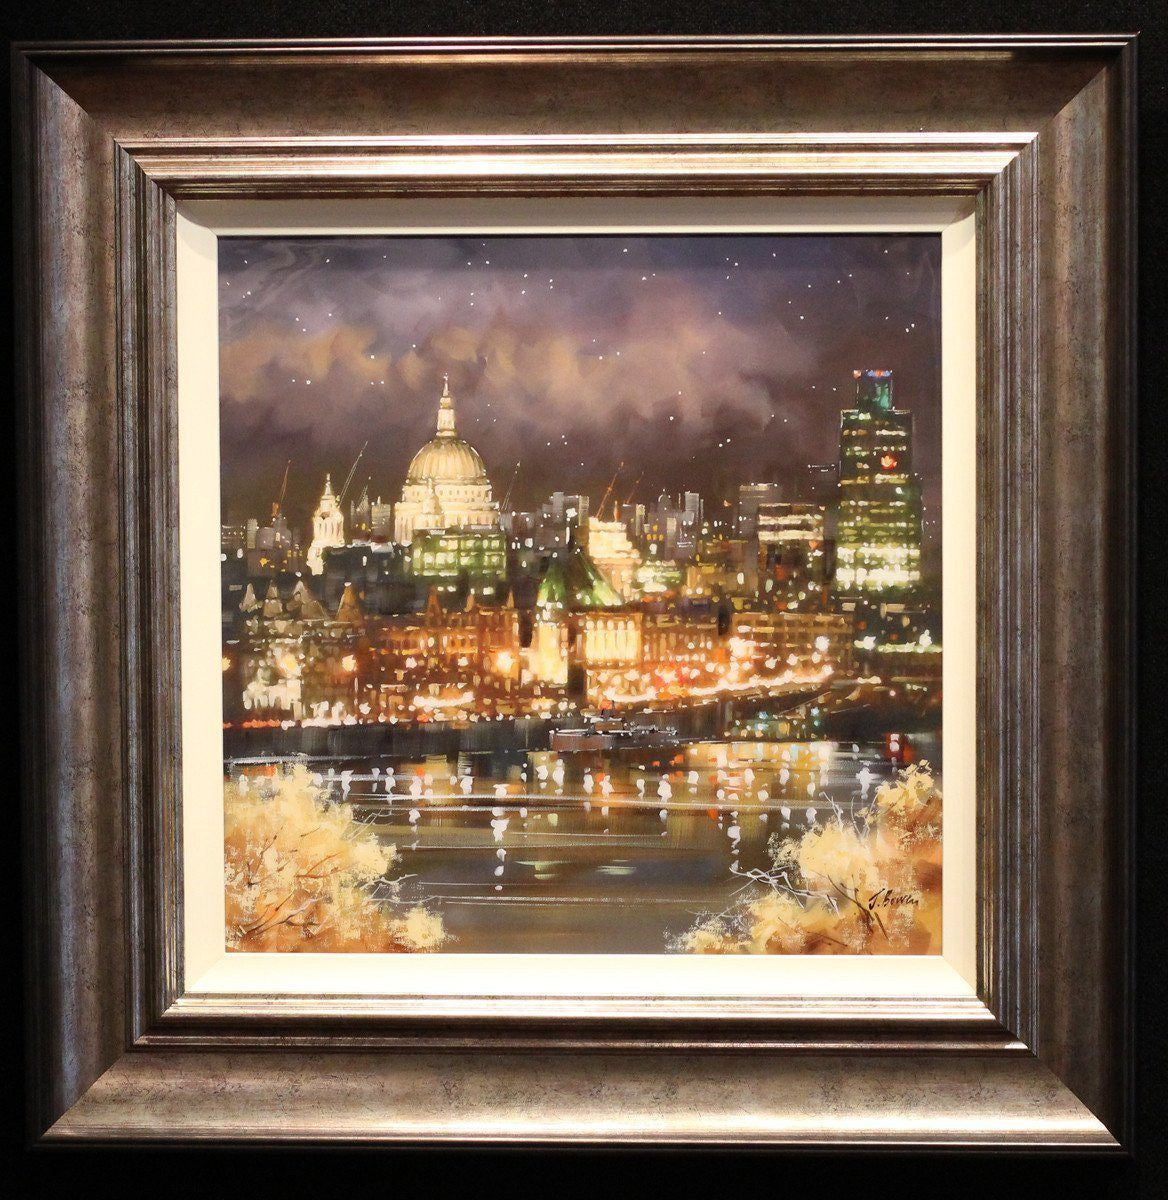 Starry Night at St Pauls - SOLD Joe Bowen